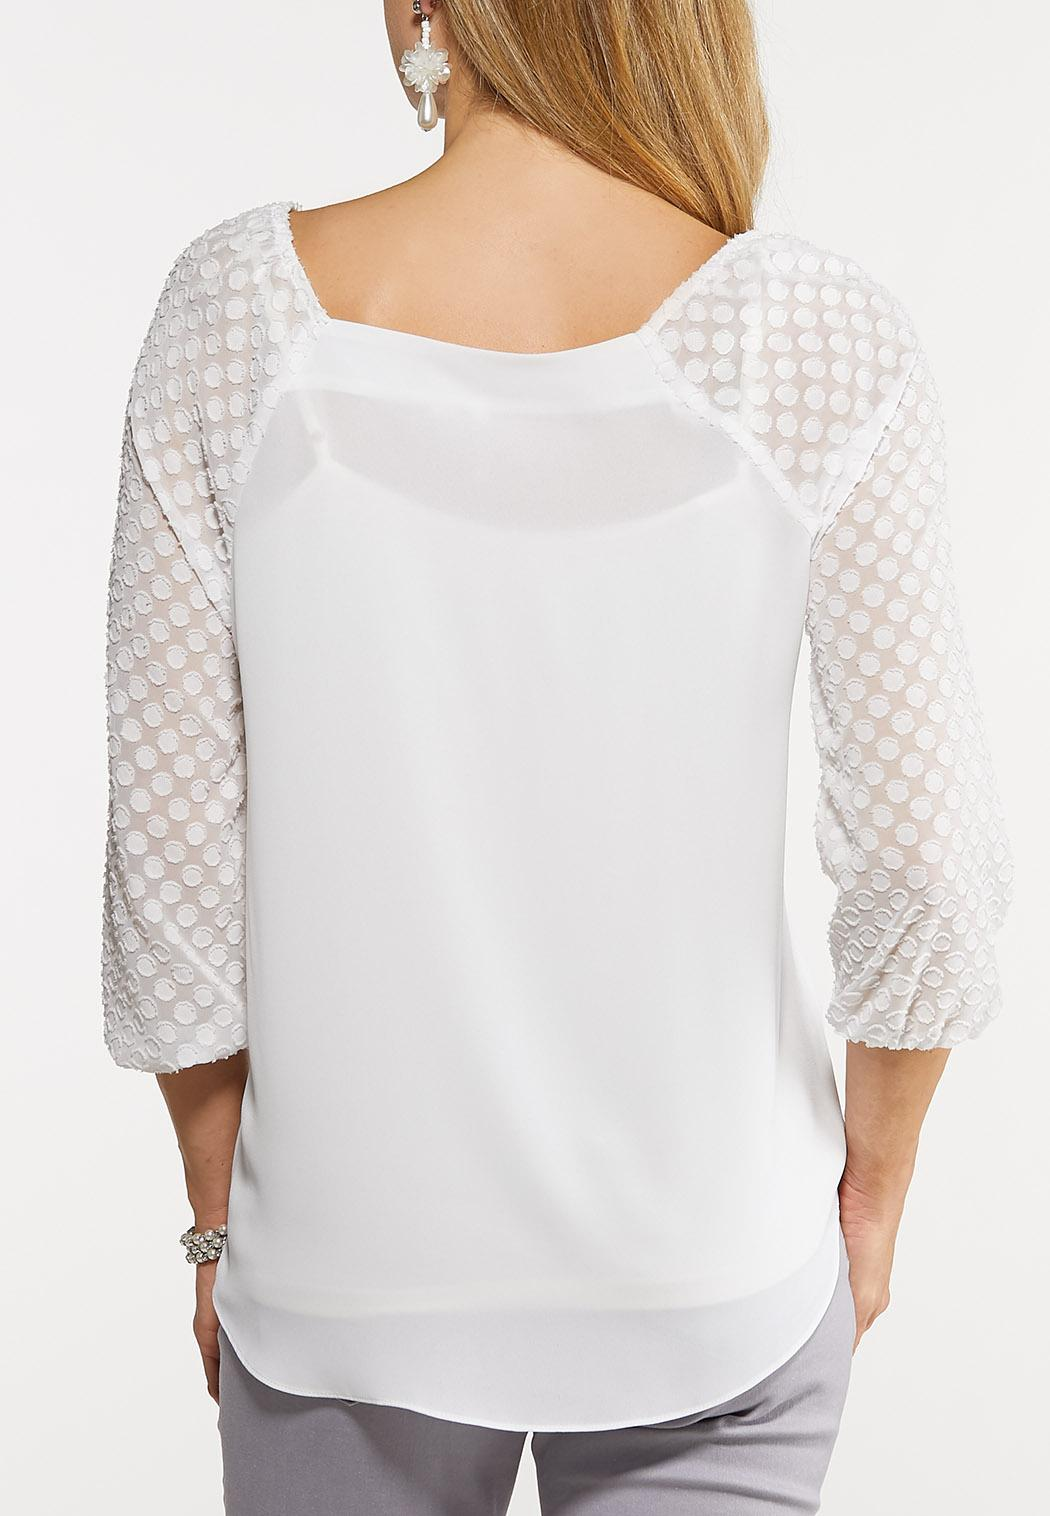 Dotted Square Neck Top (Item #44067916)